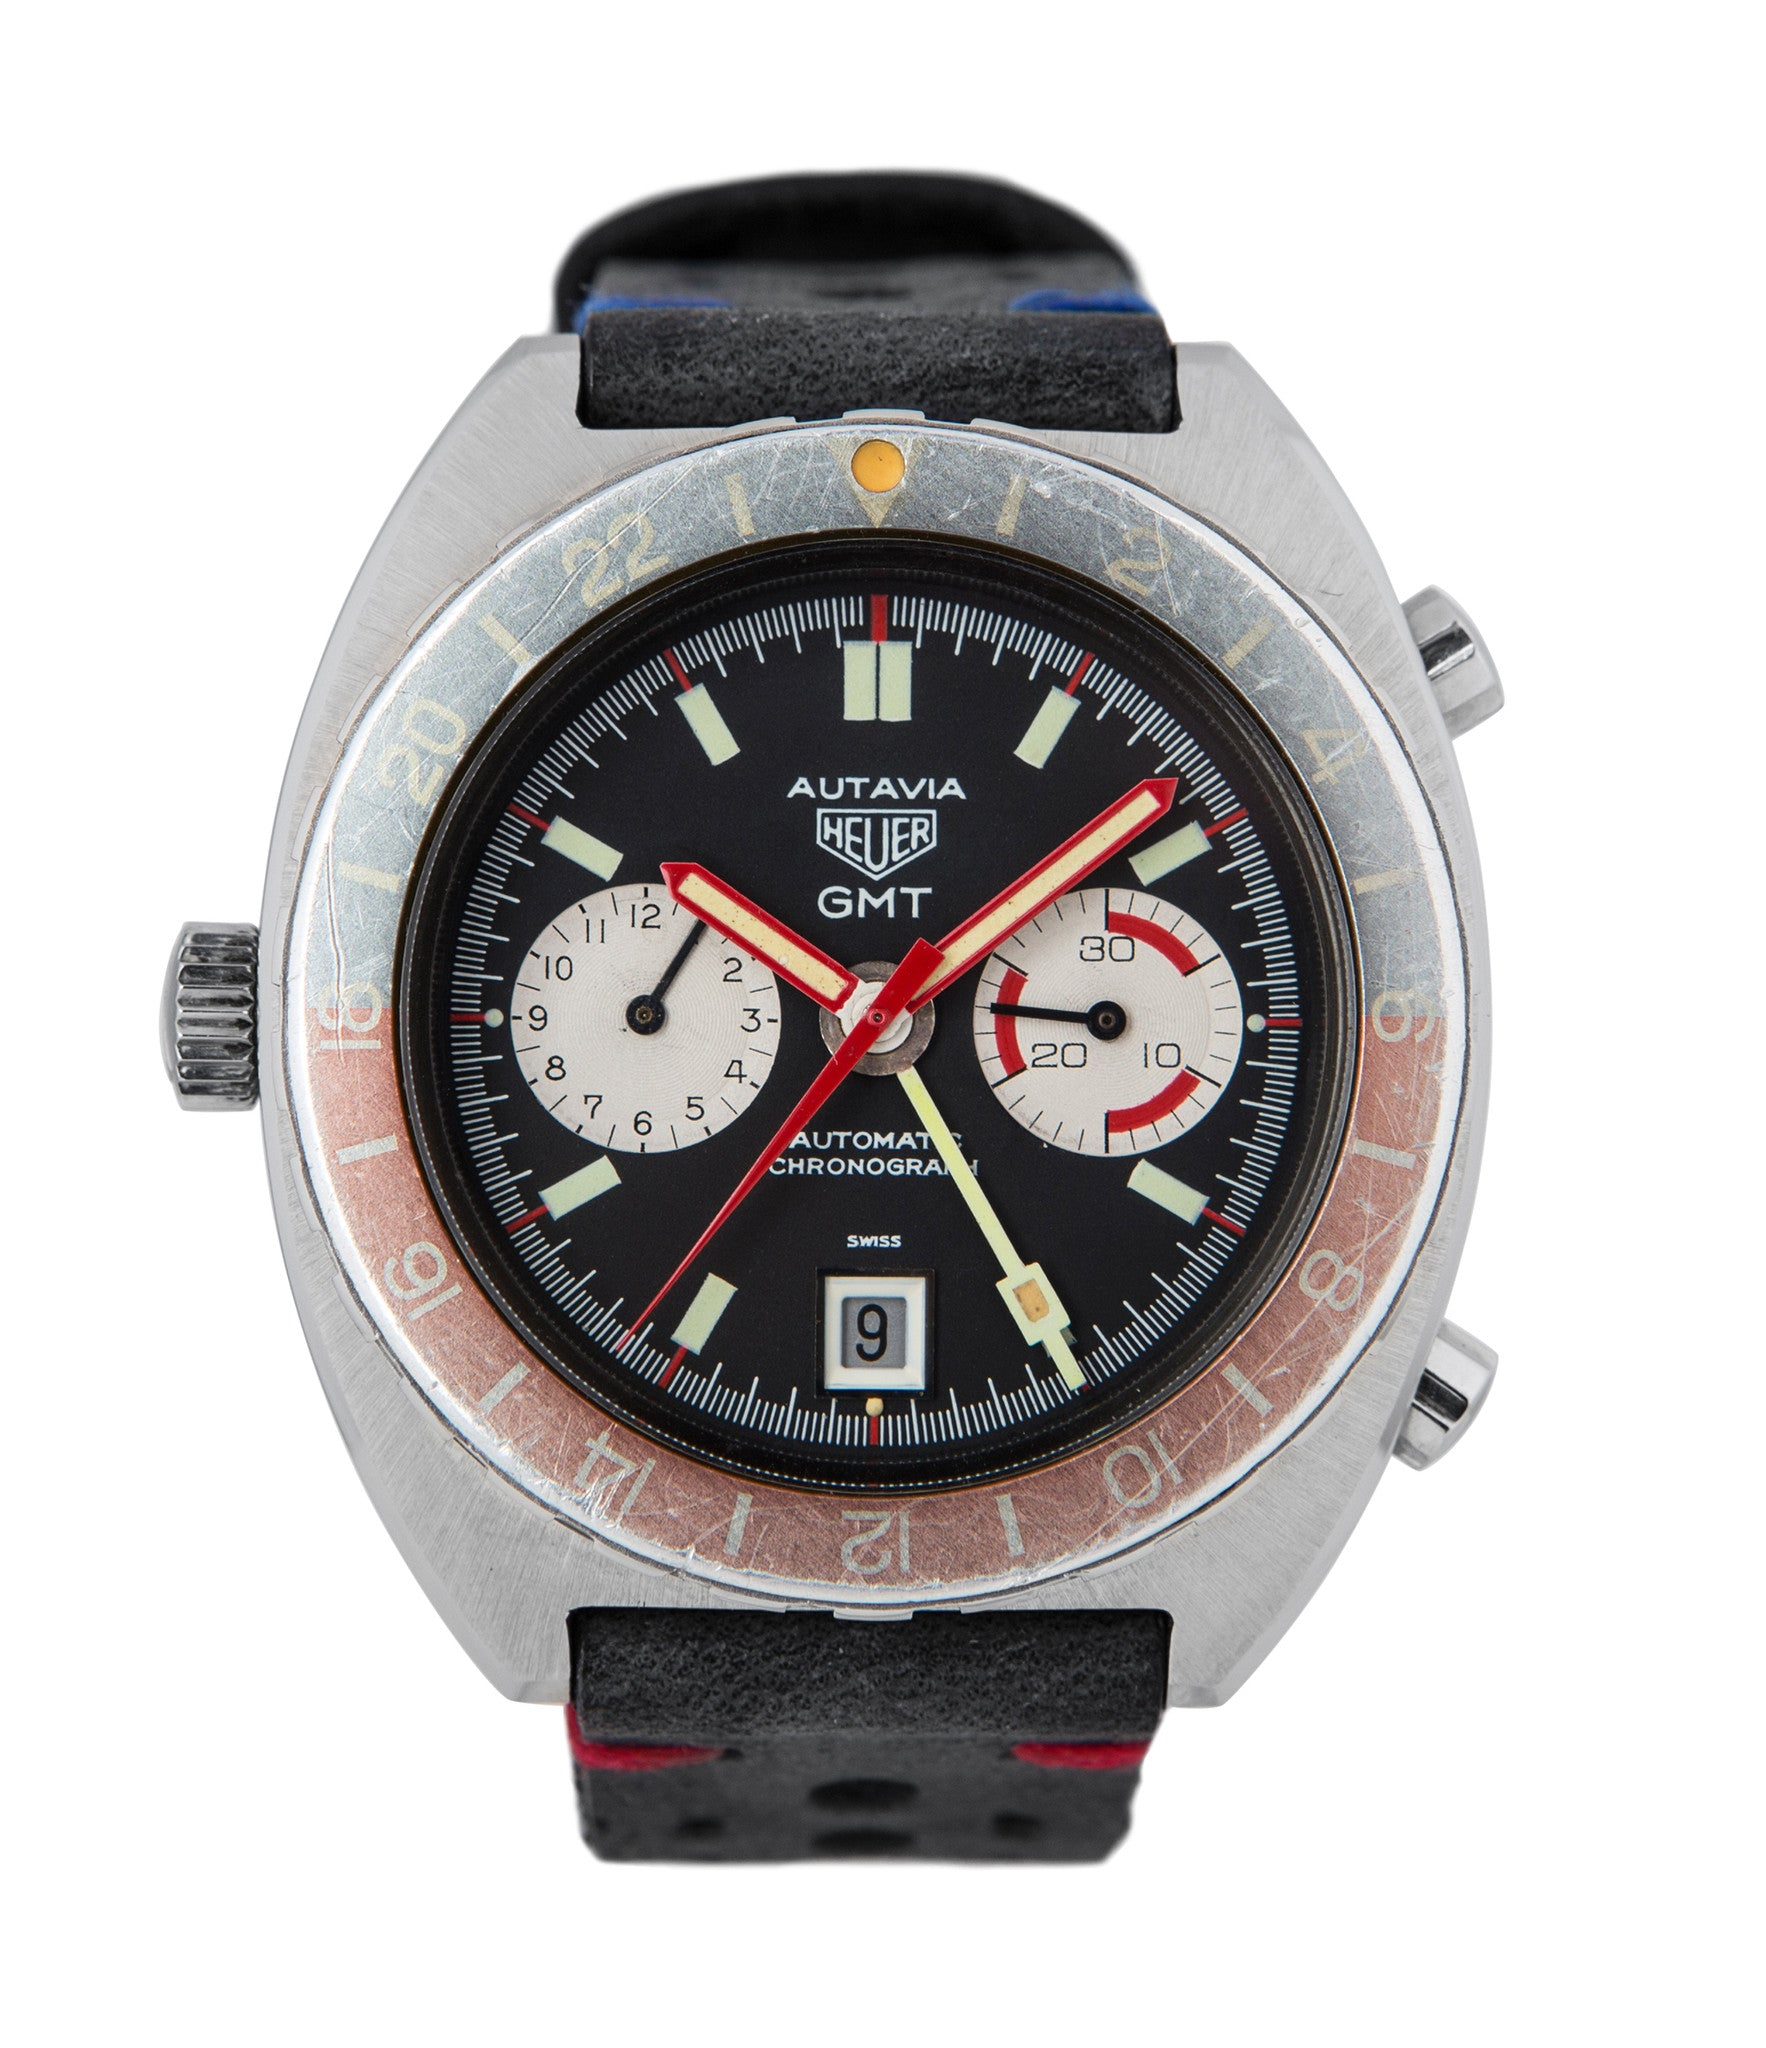 buy Heuer Autavia GMT 11630 steel vintage, rare 70s sport authentic watch for sale online at Watch Xchange London